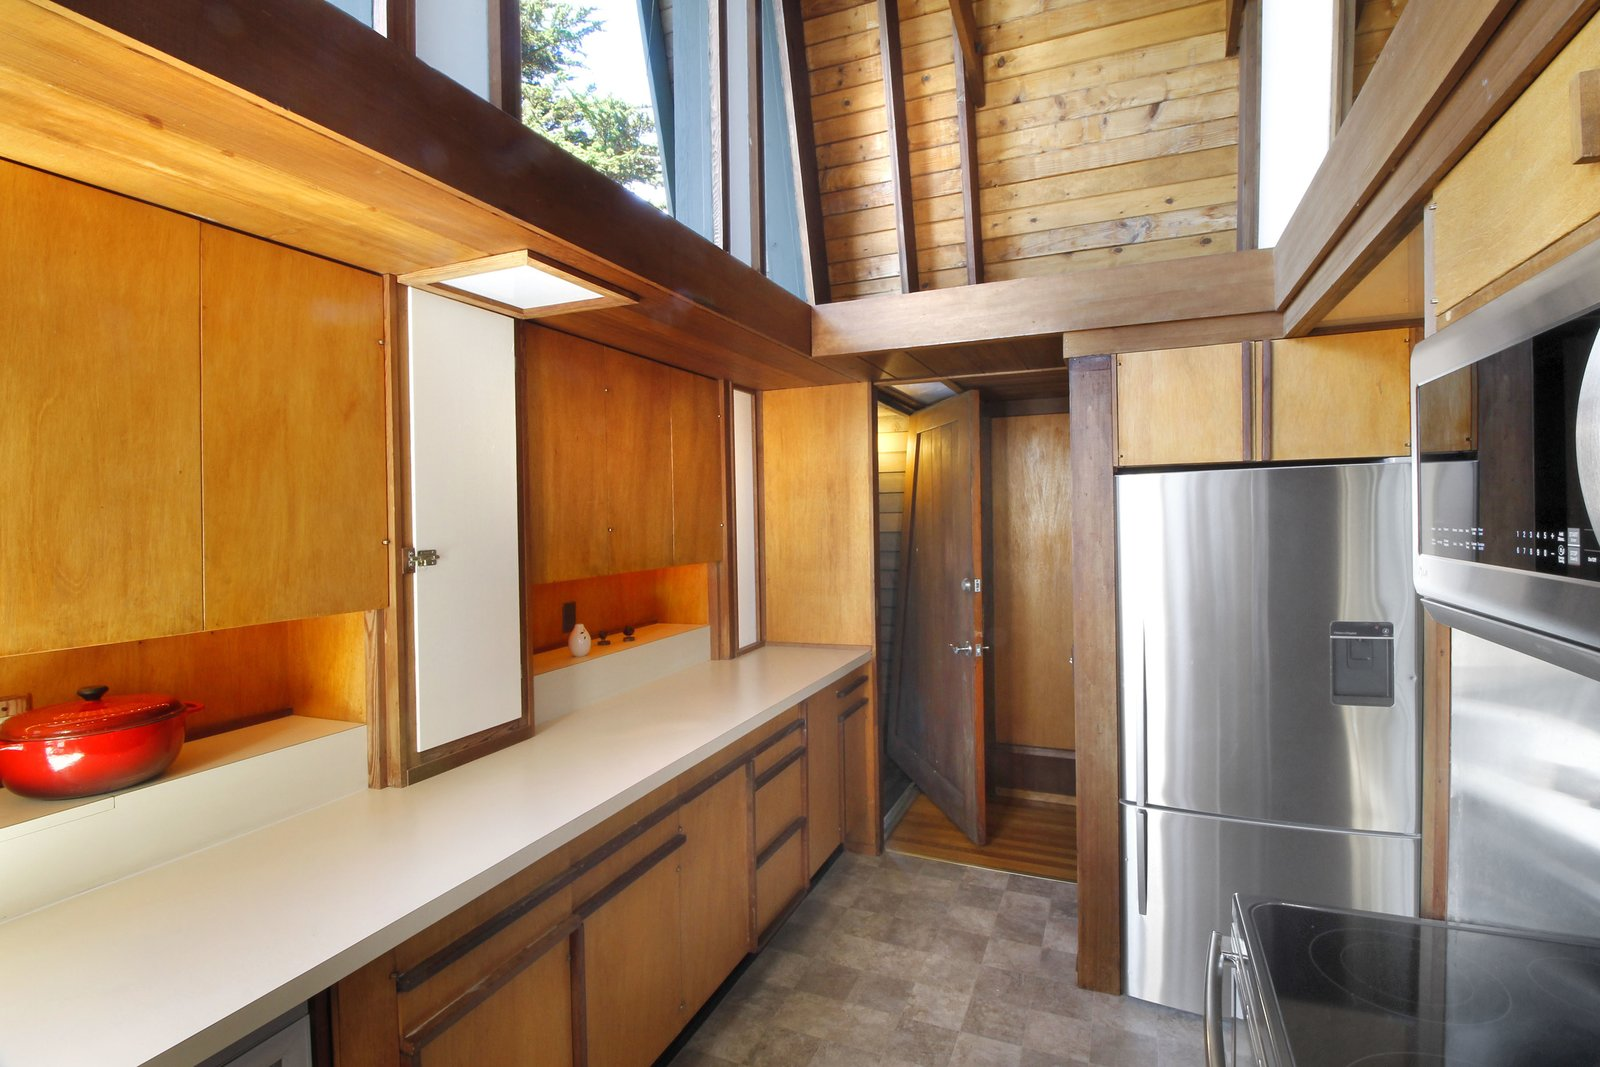 Kitchen, Wood Cabinet, Refrigerator, Microwave, Cooktops, and Wood Backsplashe  Photo 8 of 11 in A Perfectly Preserved Midcentury Pad in Northern California Asks $1.975M